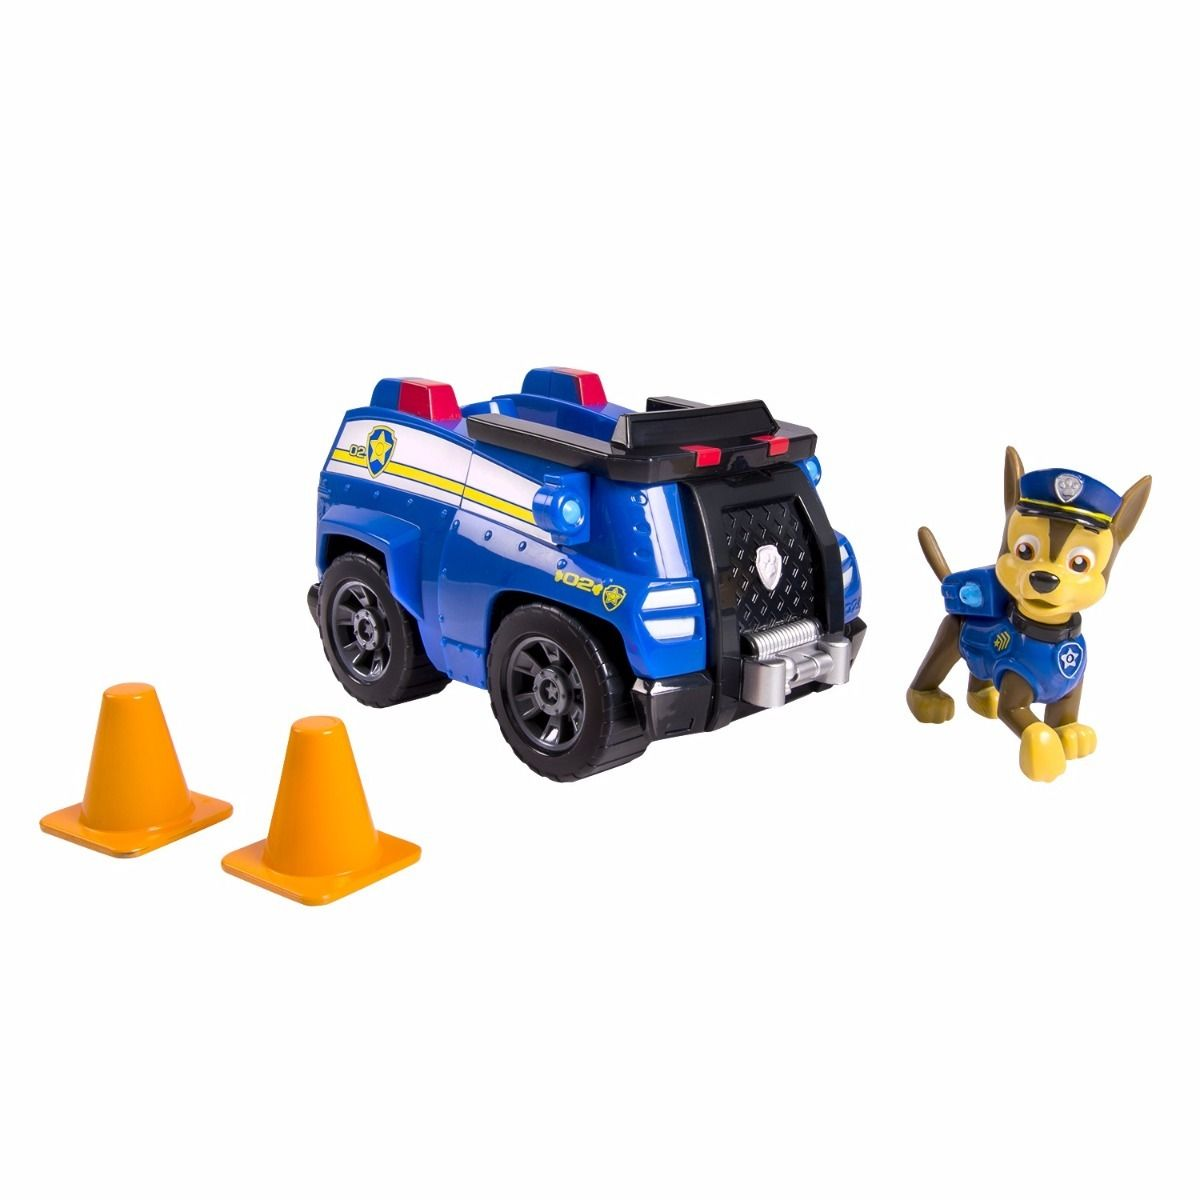 Patrulha Canina - Veiculo + Figura + cone - Chases Cruiser - Sunny  - Doce Diversão